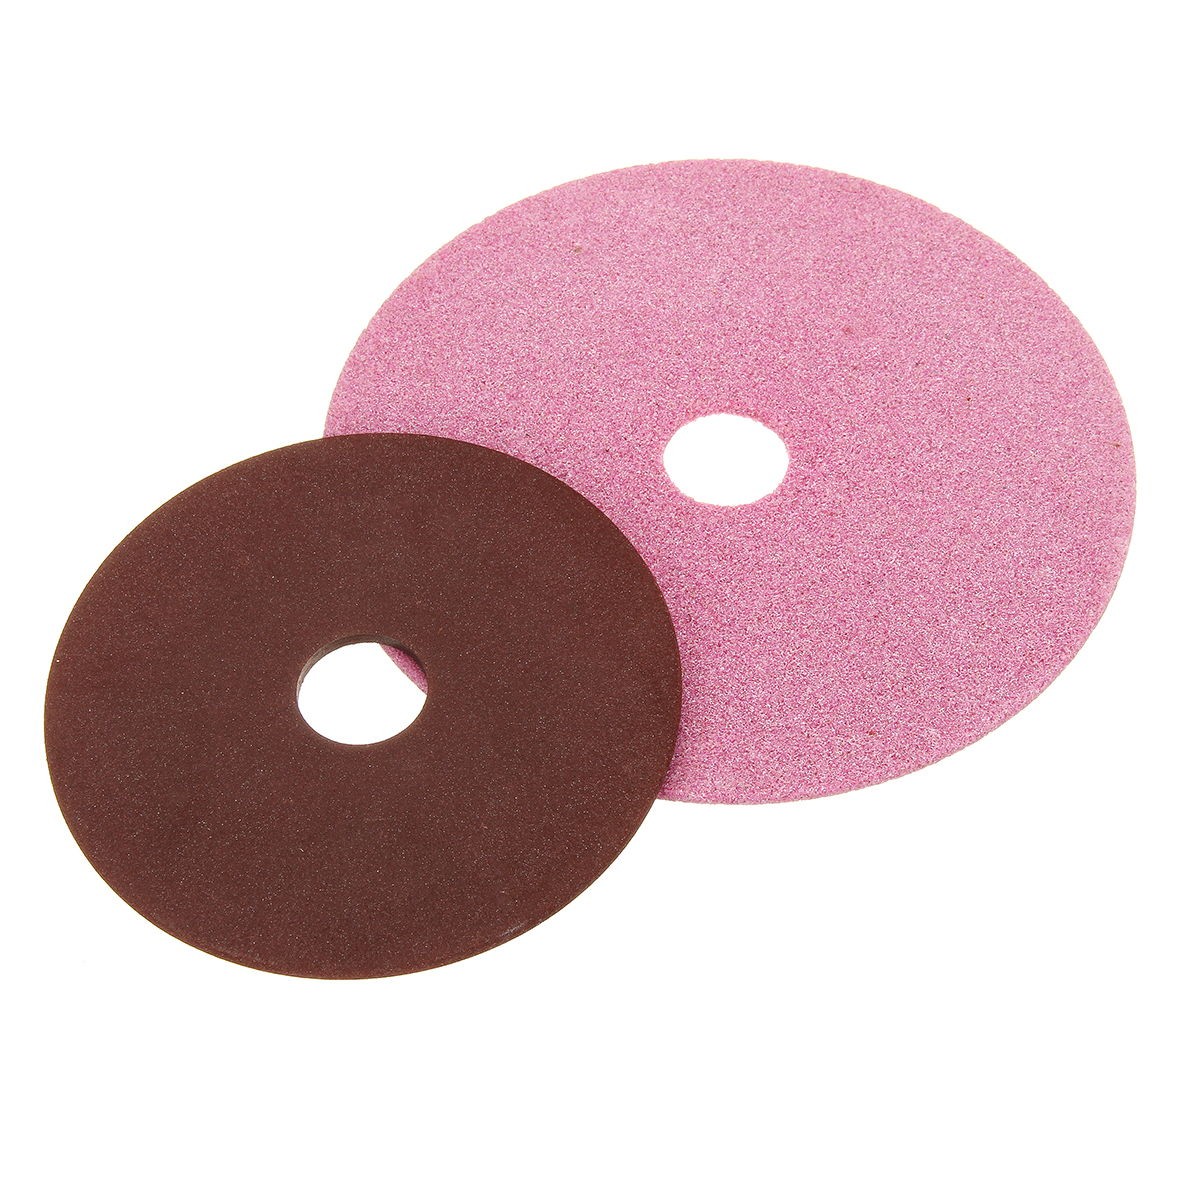 Ceramic/Resin Durable Grinding Wheel Disc Replacement For Chainsaw Sharpener Grinder 3/8 & 404 Chain Easy To Install And Use